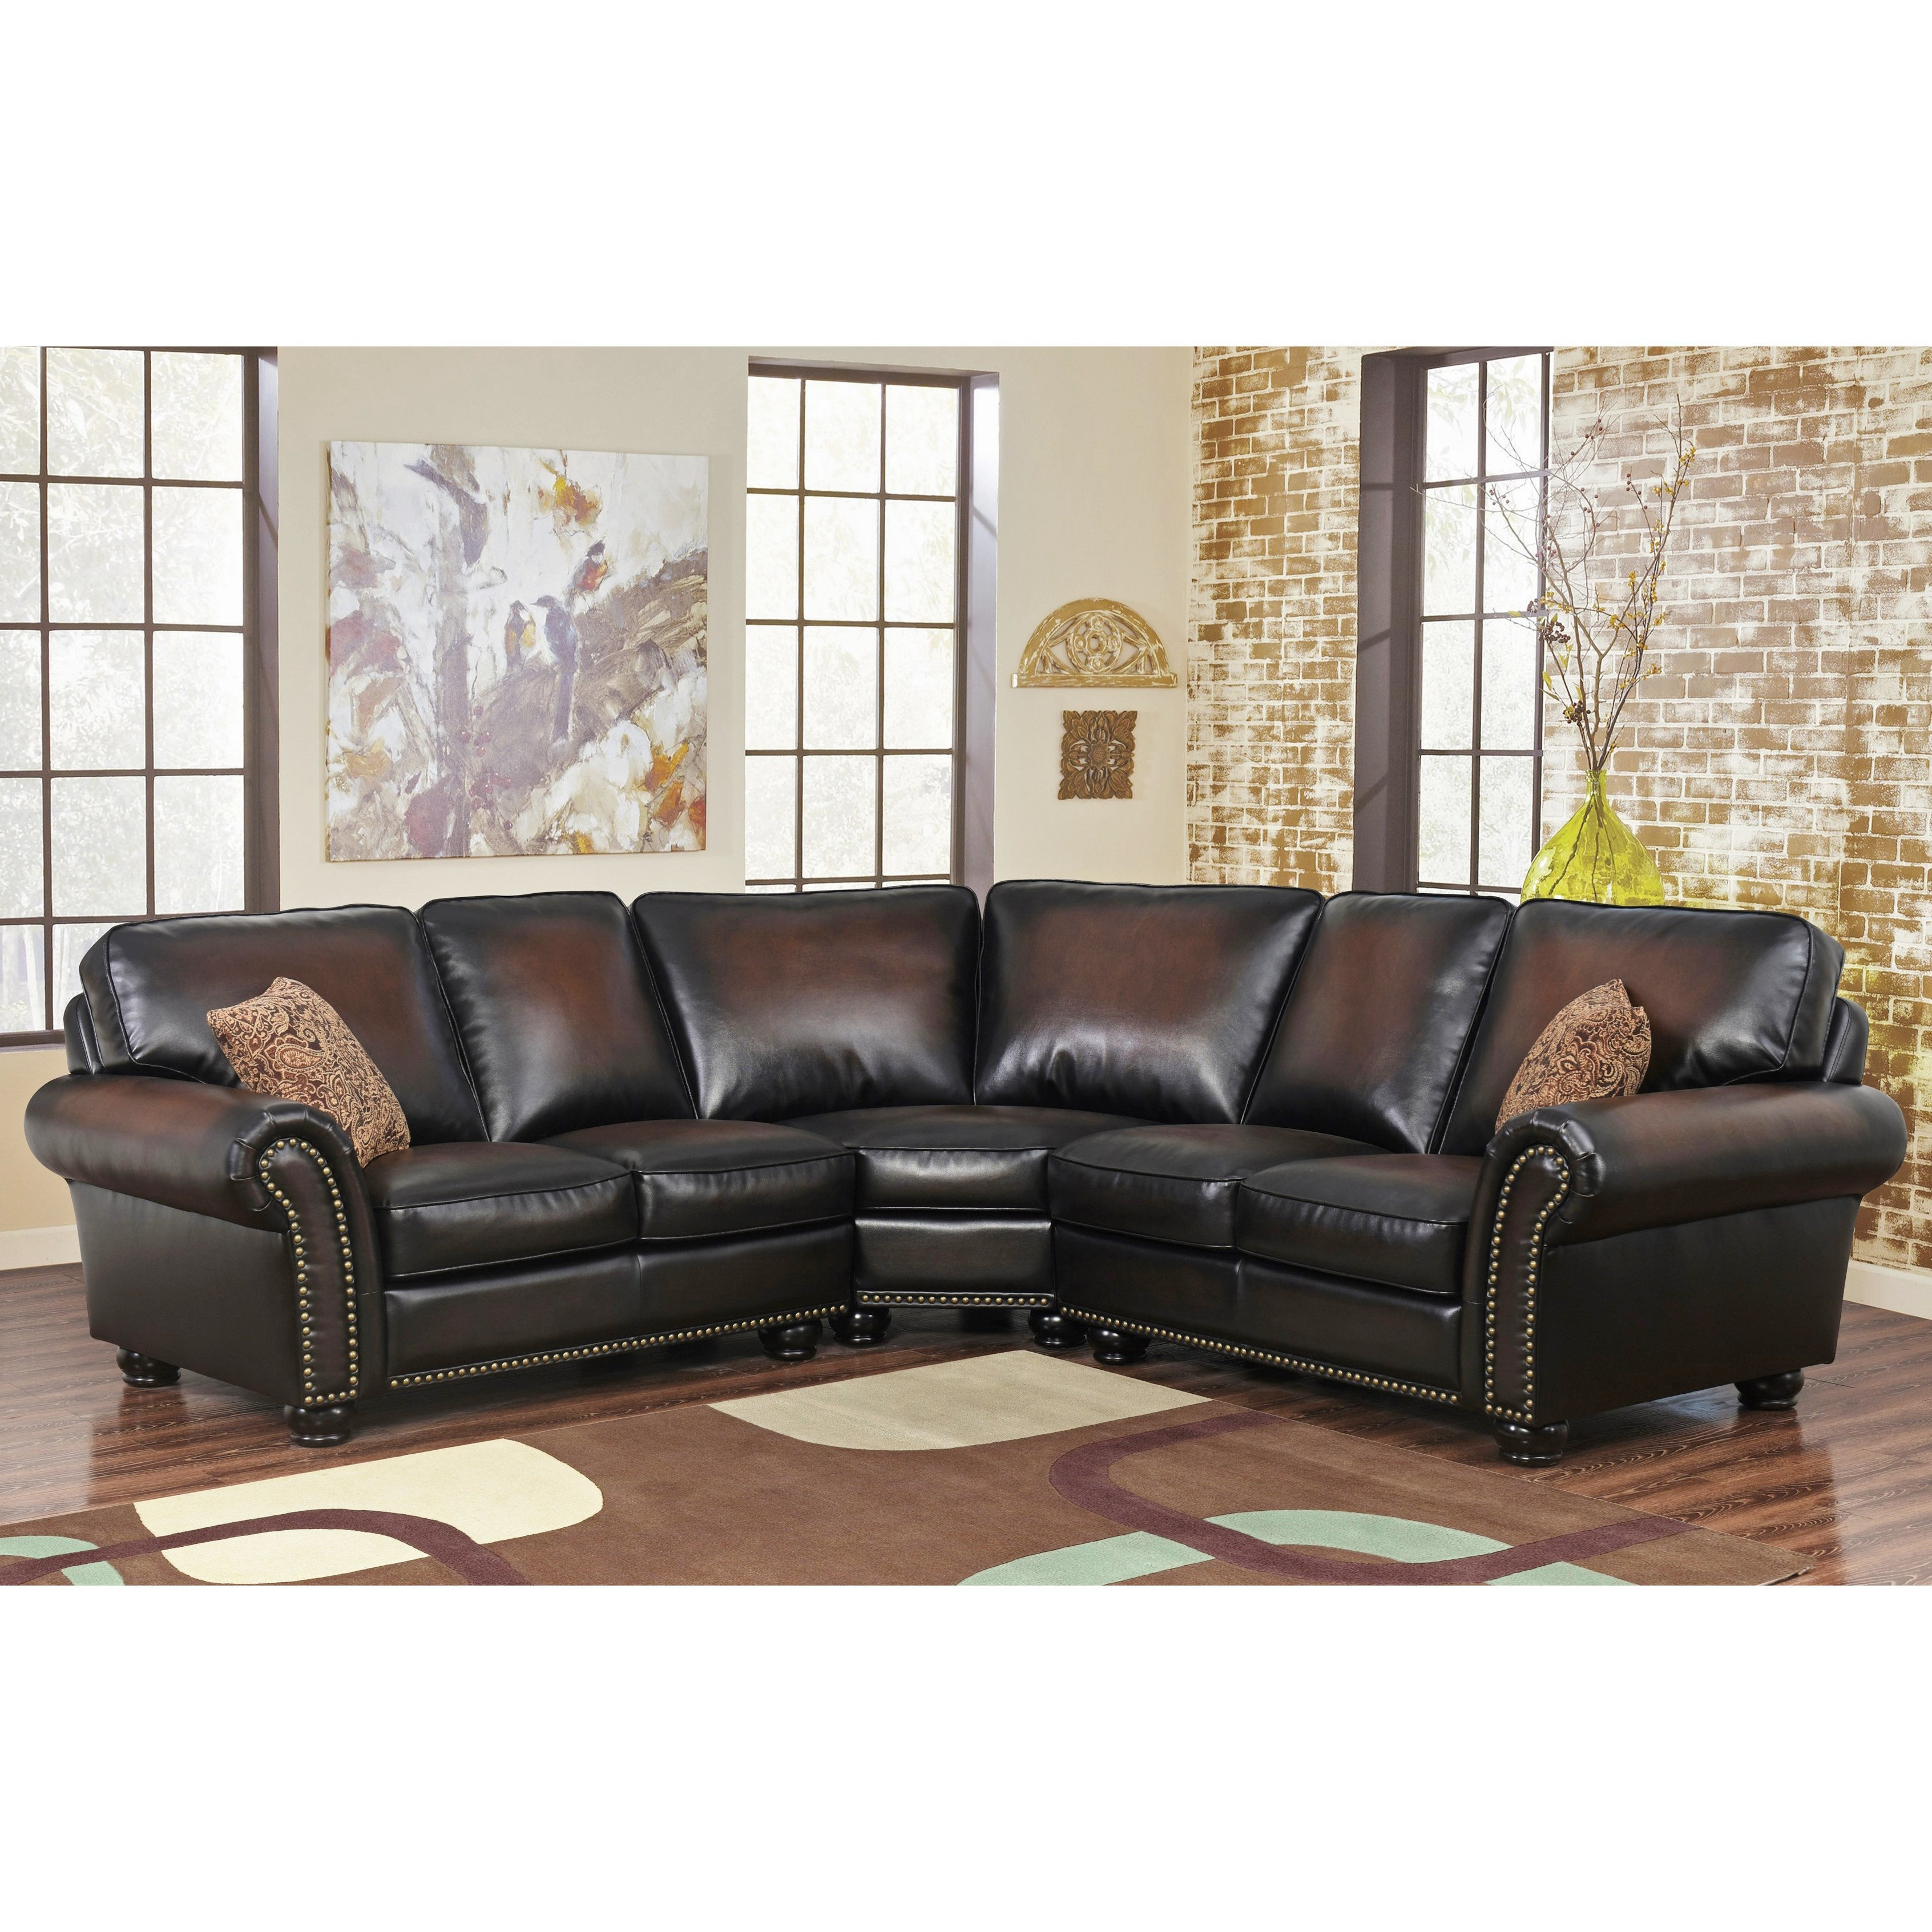 Shop Abbyson Melrose Bonded Leather 3 Piece Sectional – On Sale Regarding Popular Haven 3 Piece Sectionals (View 10 of 20)